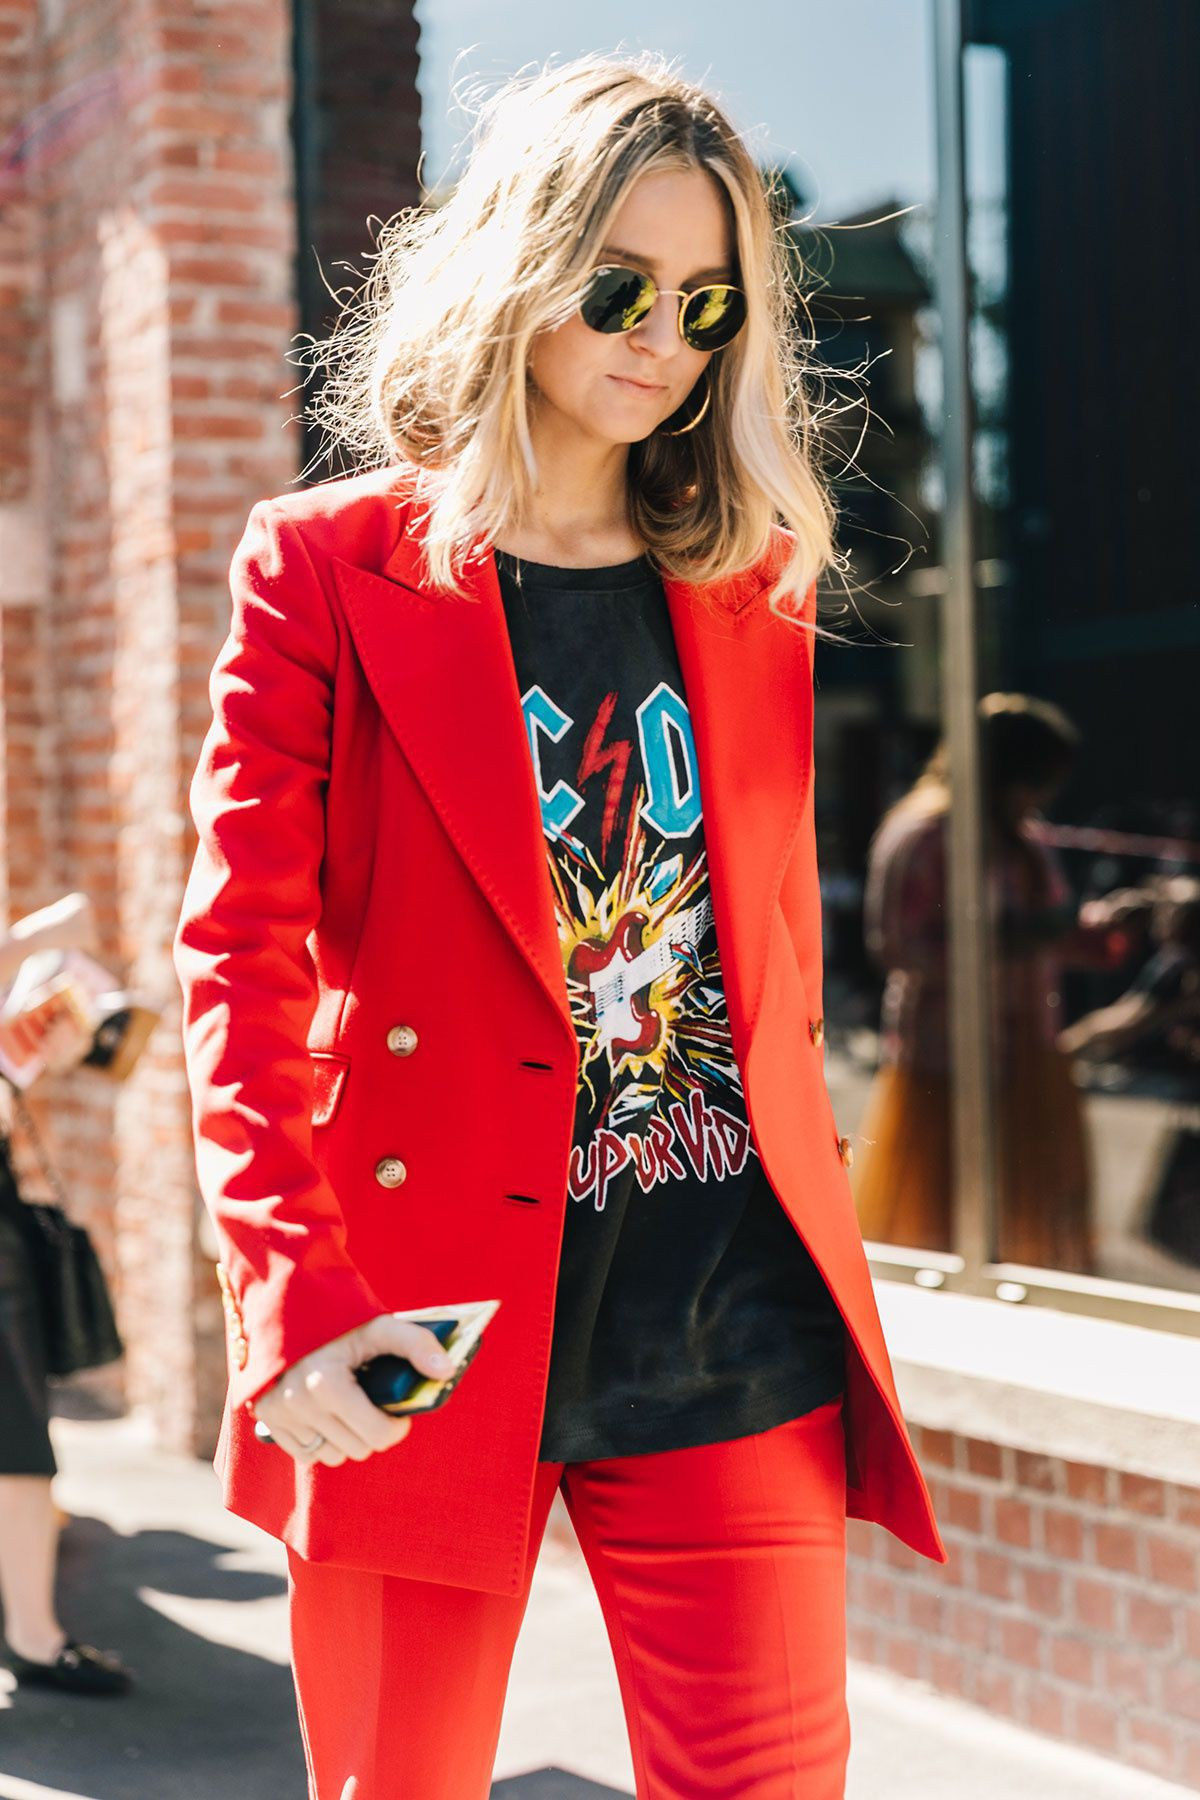 Suit with band tee, street fashion, t shirt